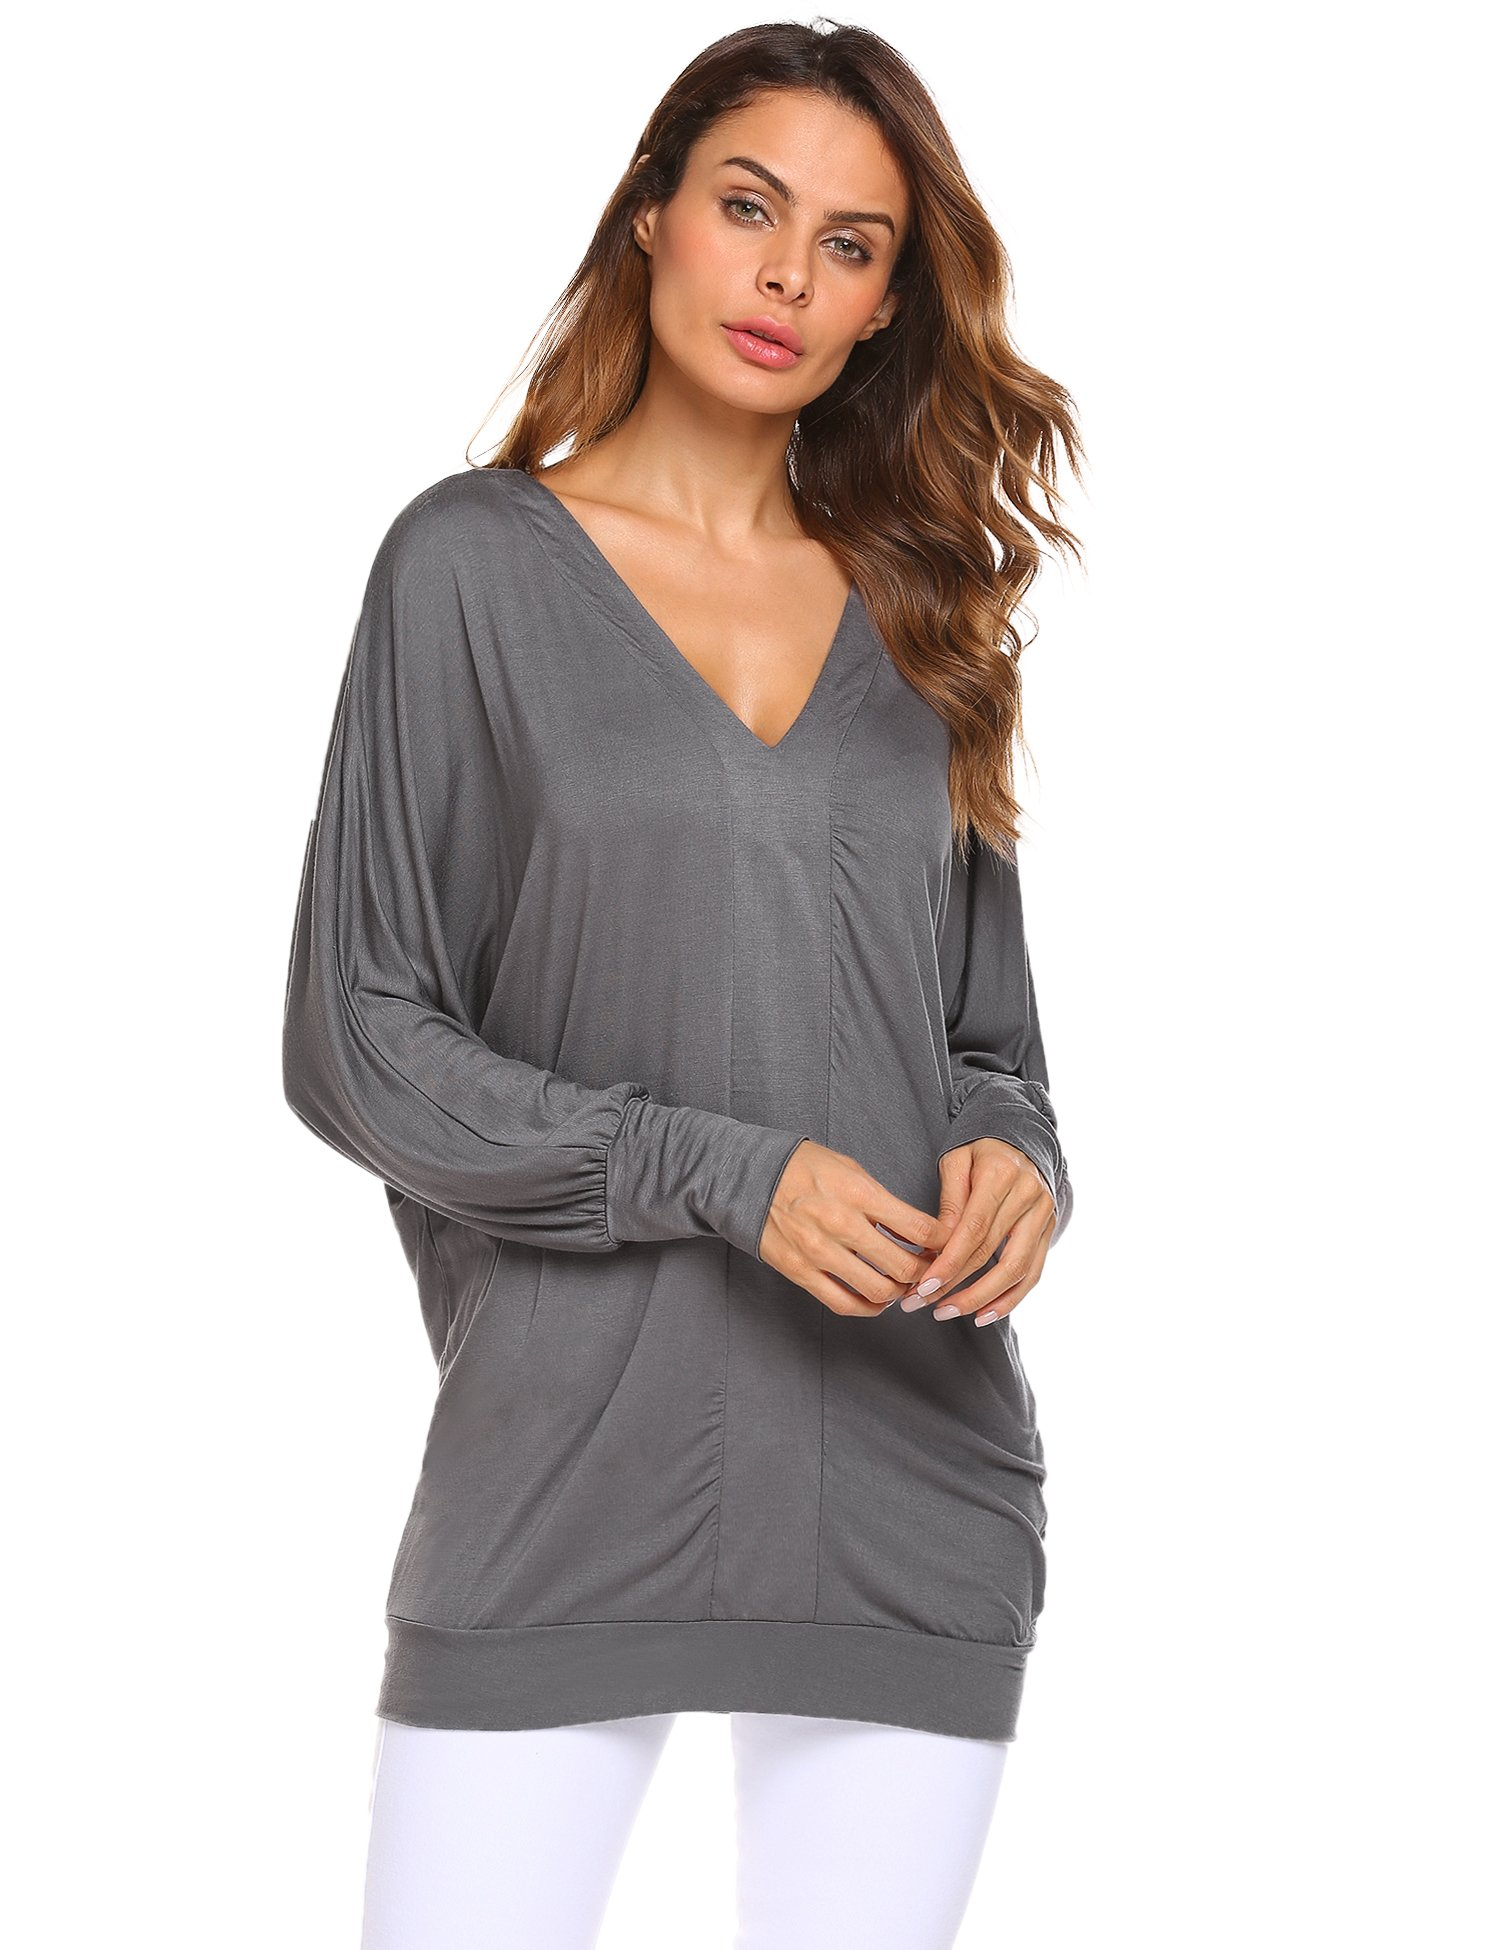 SummerRio V Neck Batwing Sleeve Ruffled Shoulder Solid Cotton Blouse